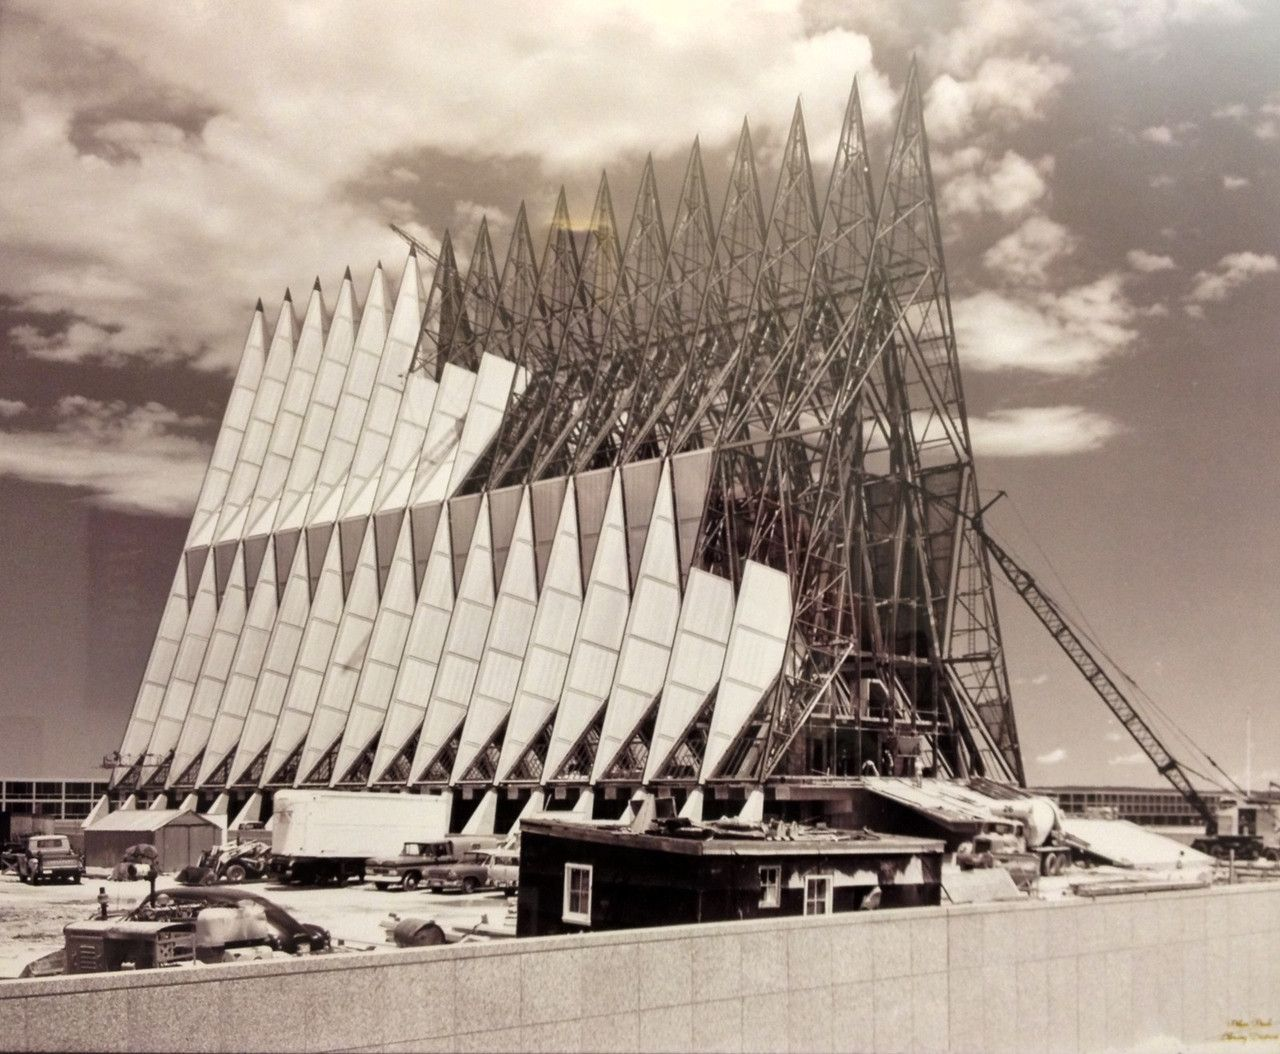 Construction on the U.S. Air Force Academy's iconic Cadet